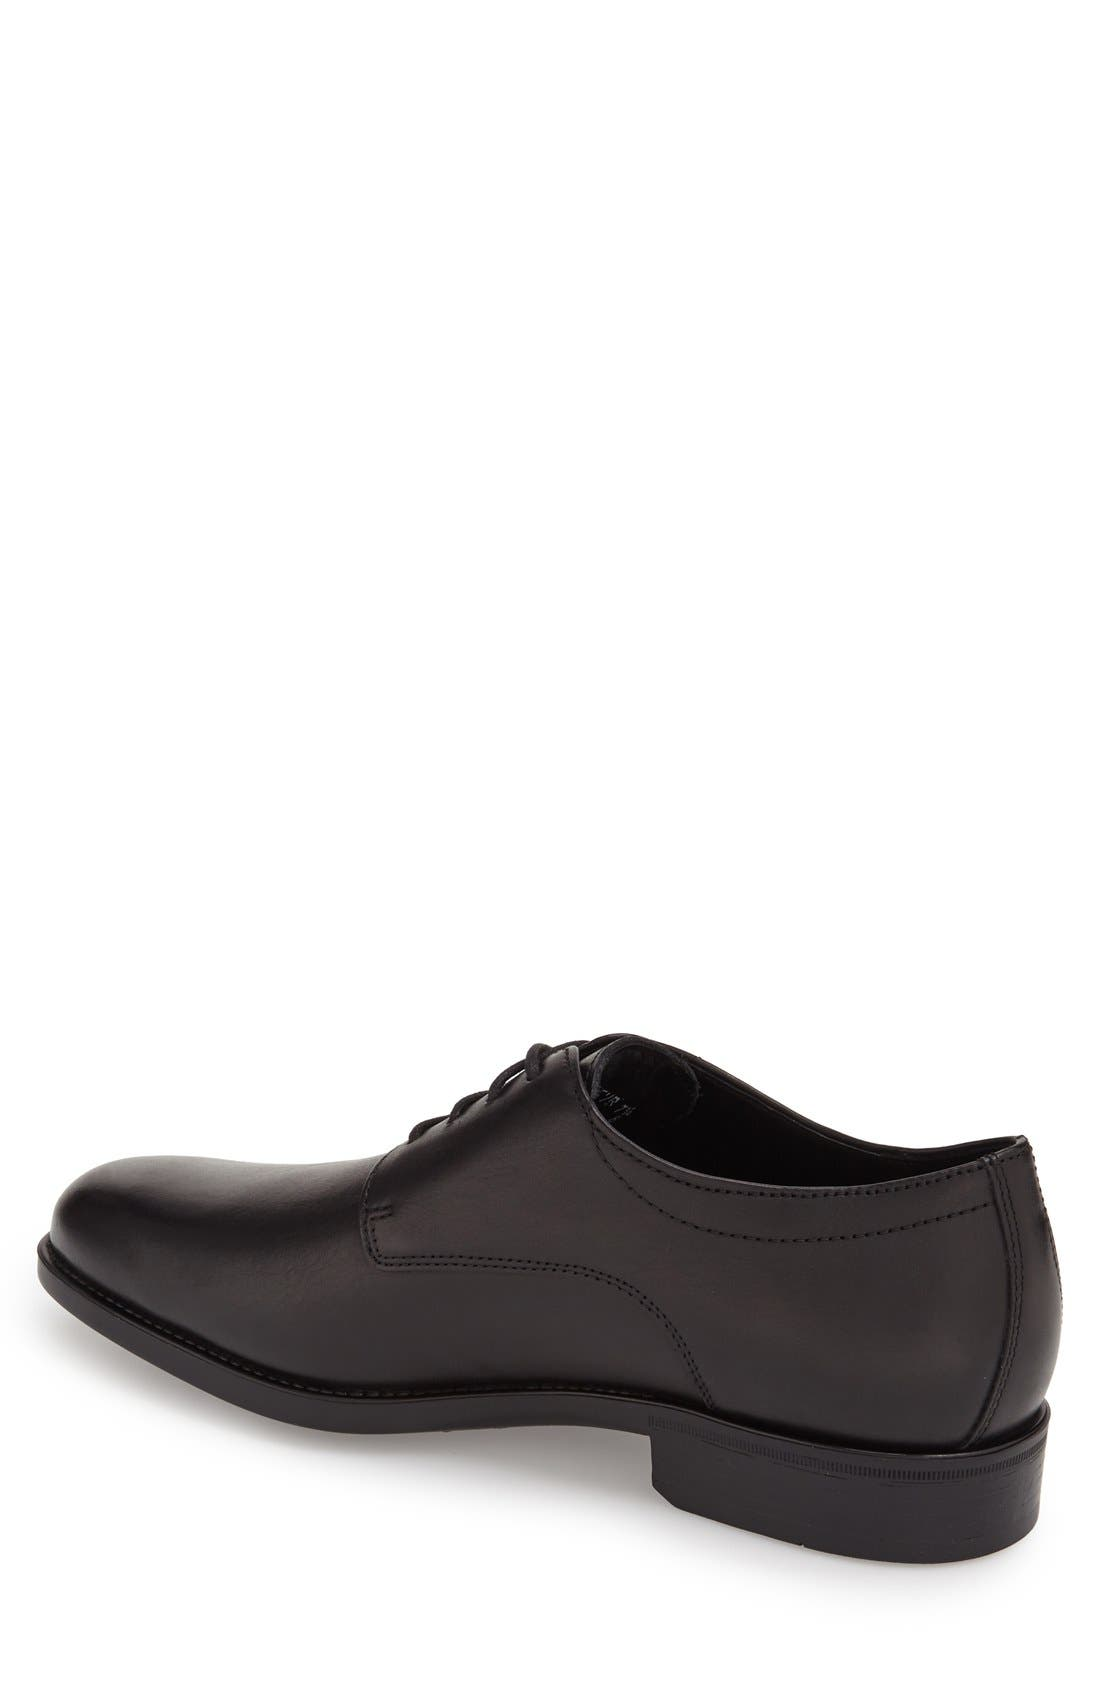 Alternate Image 2  - Mephisto 'Cooper' Plain Toe Derby (Men)